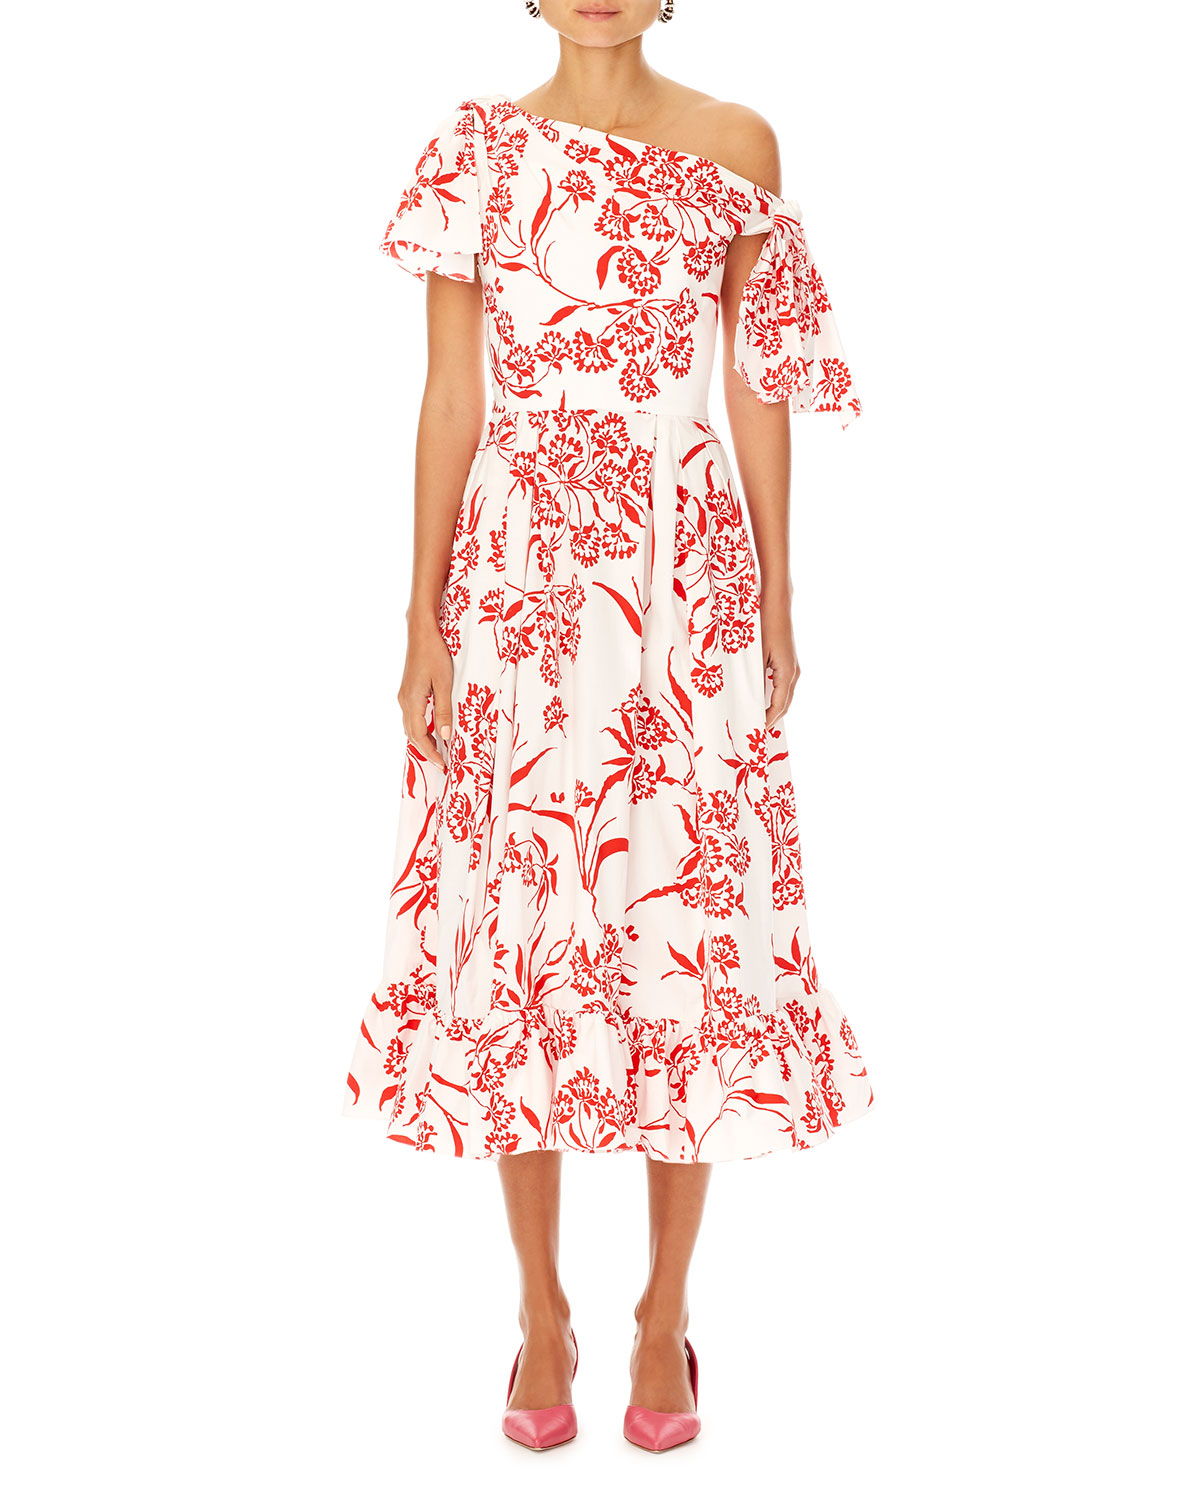 Asymmetric Floral-Print Cotton Dress w/ Knot Detail